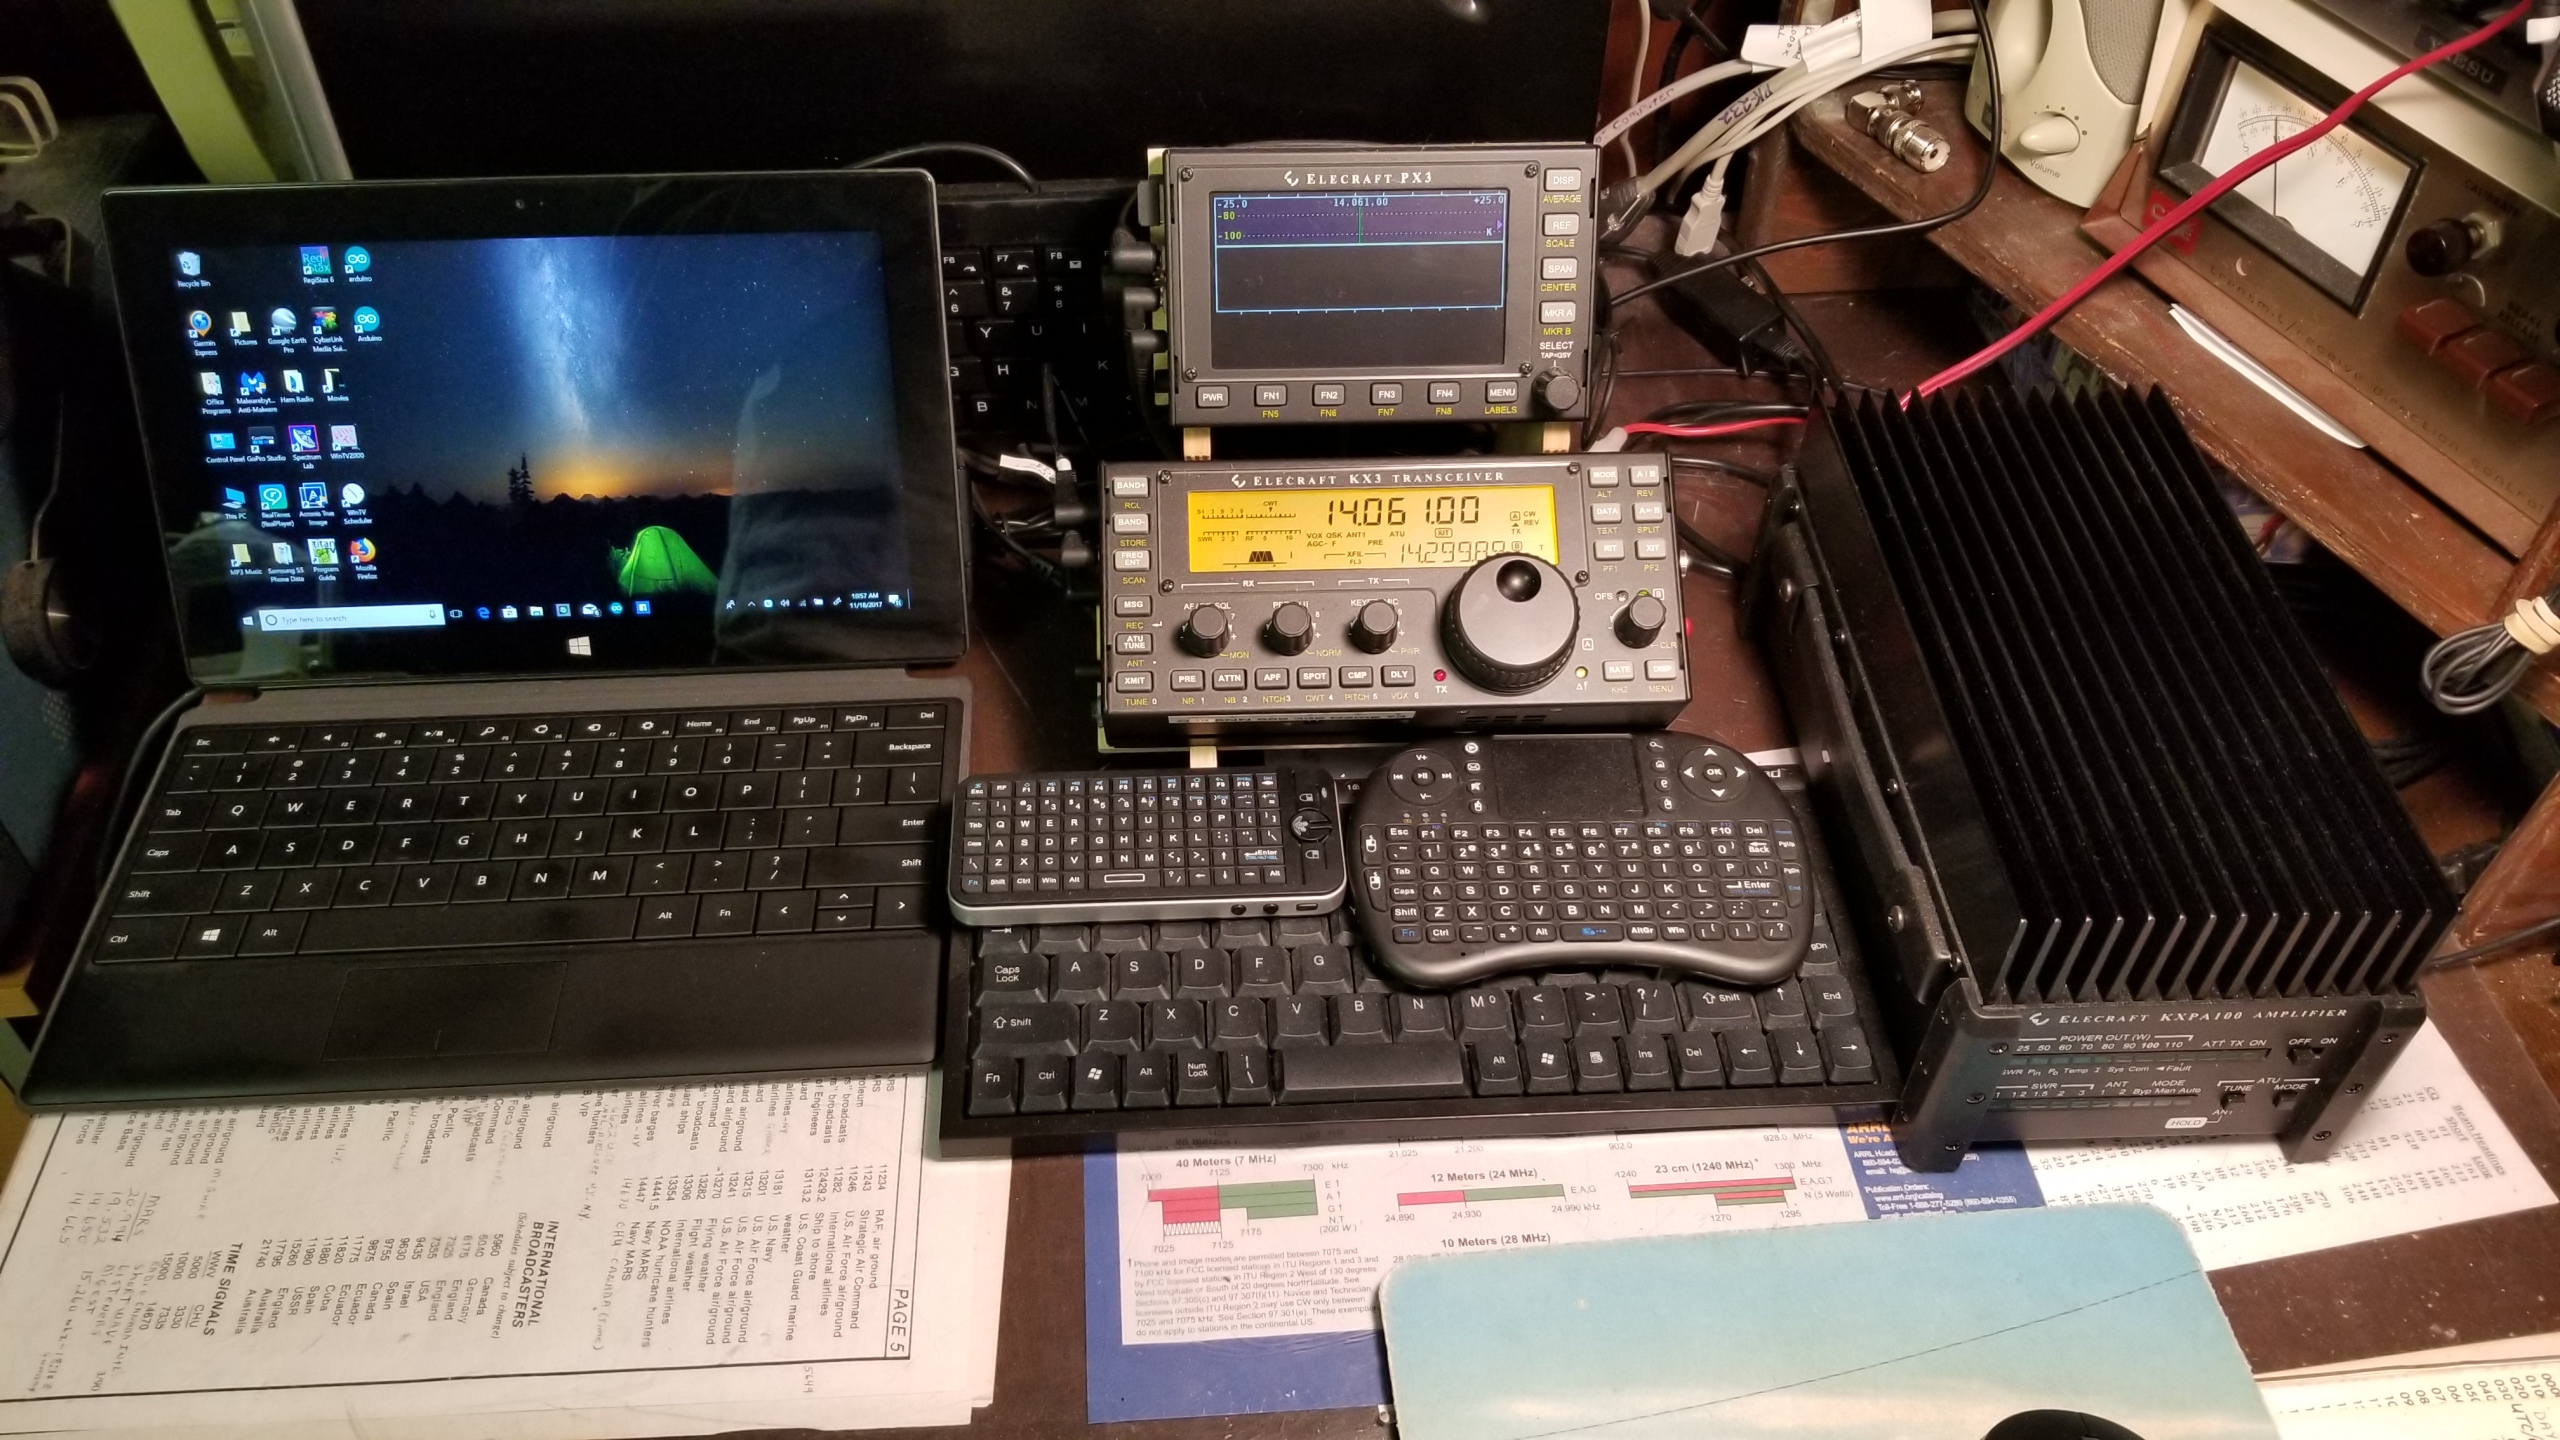 Chasers: Show us your Station - Equipment - SOTA Reflector